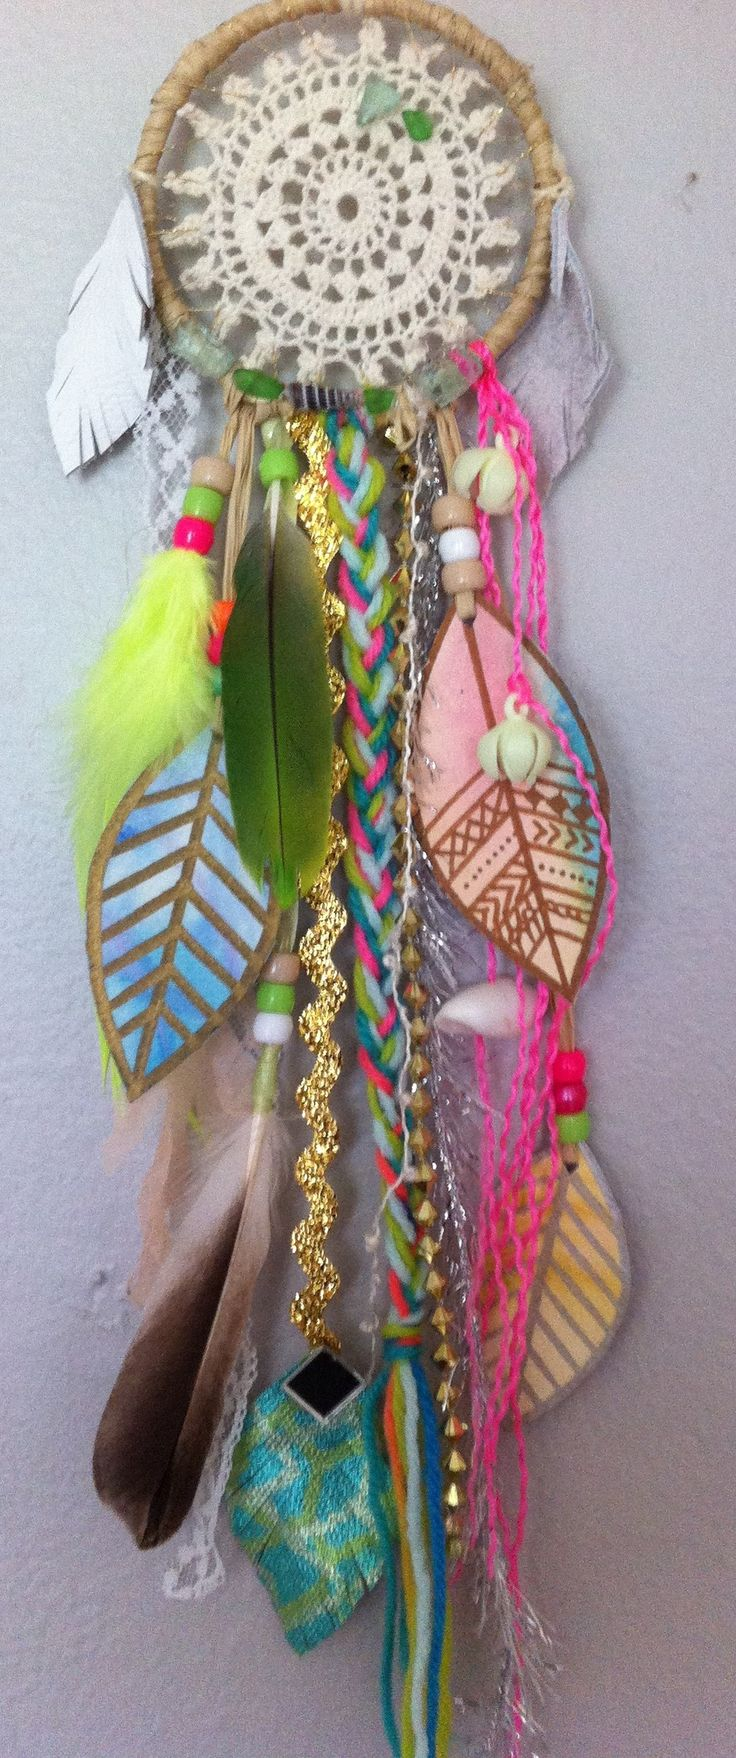 mini dreamcatcher by rachael rice with watercolor and natural parrot feathers